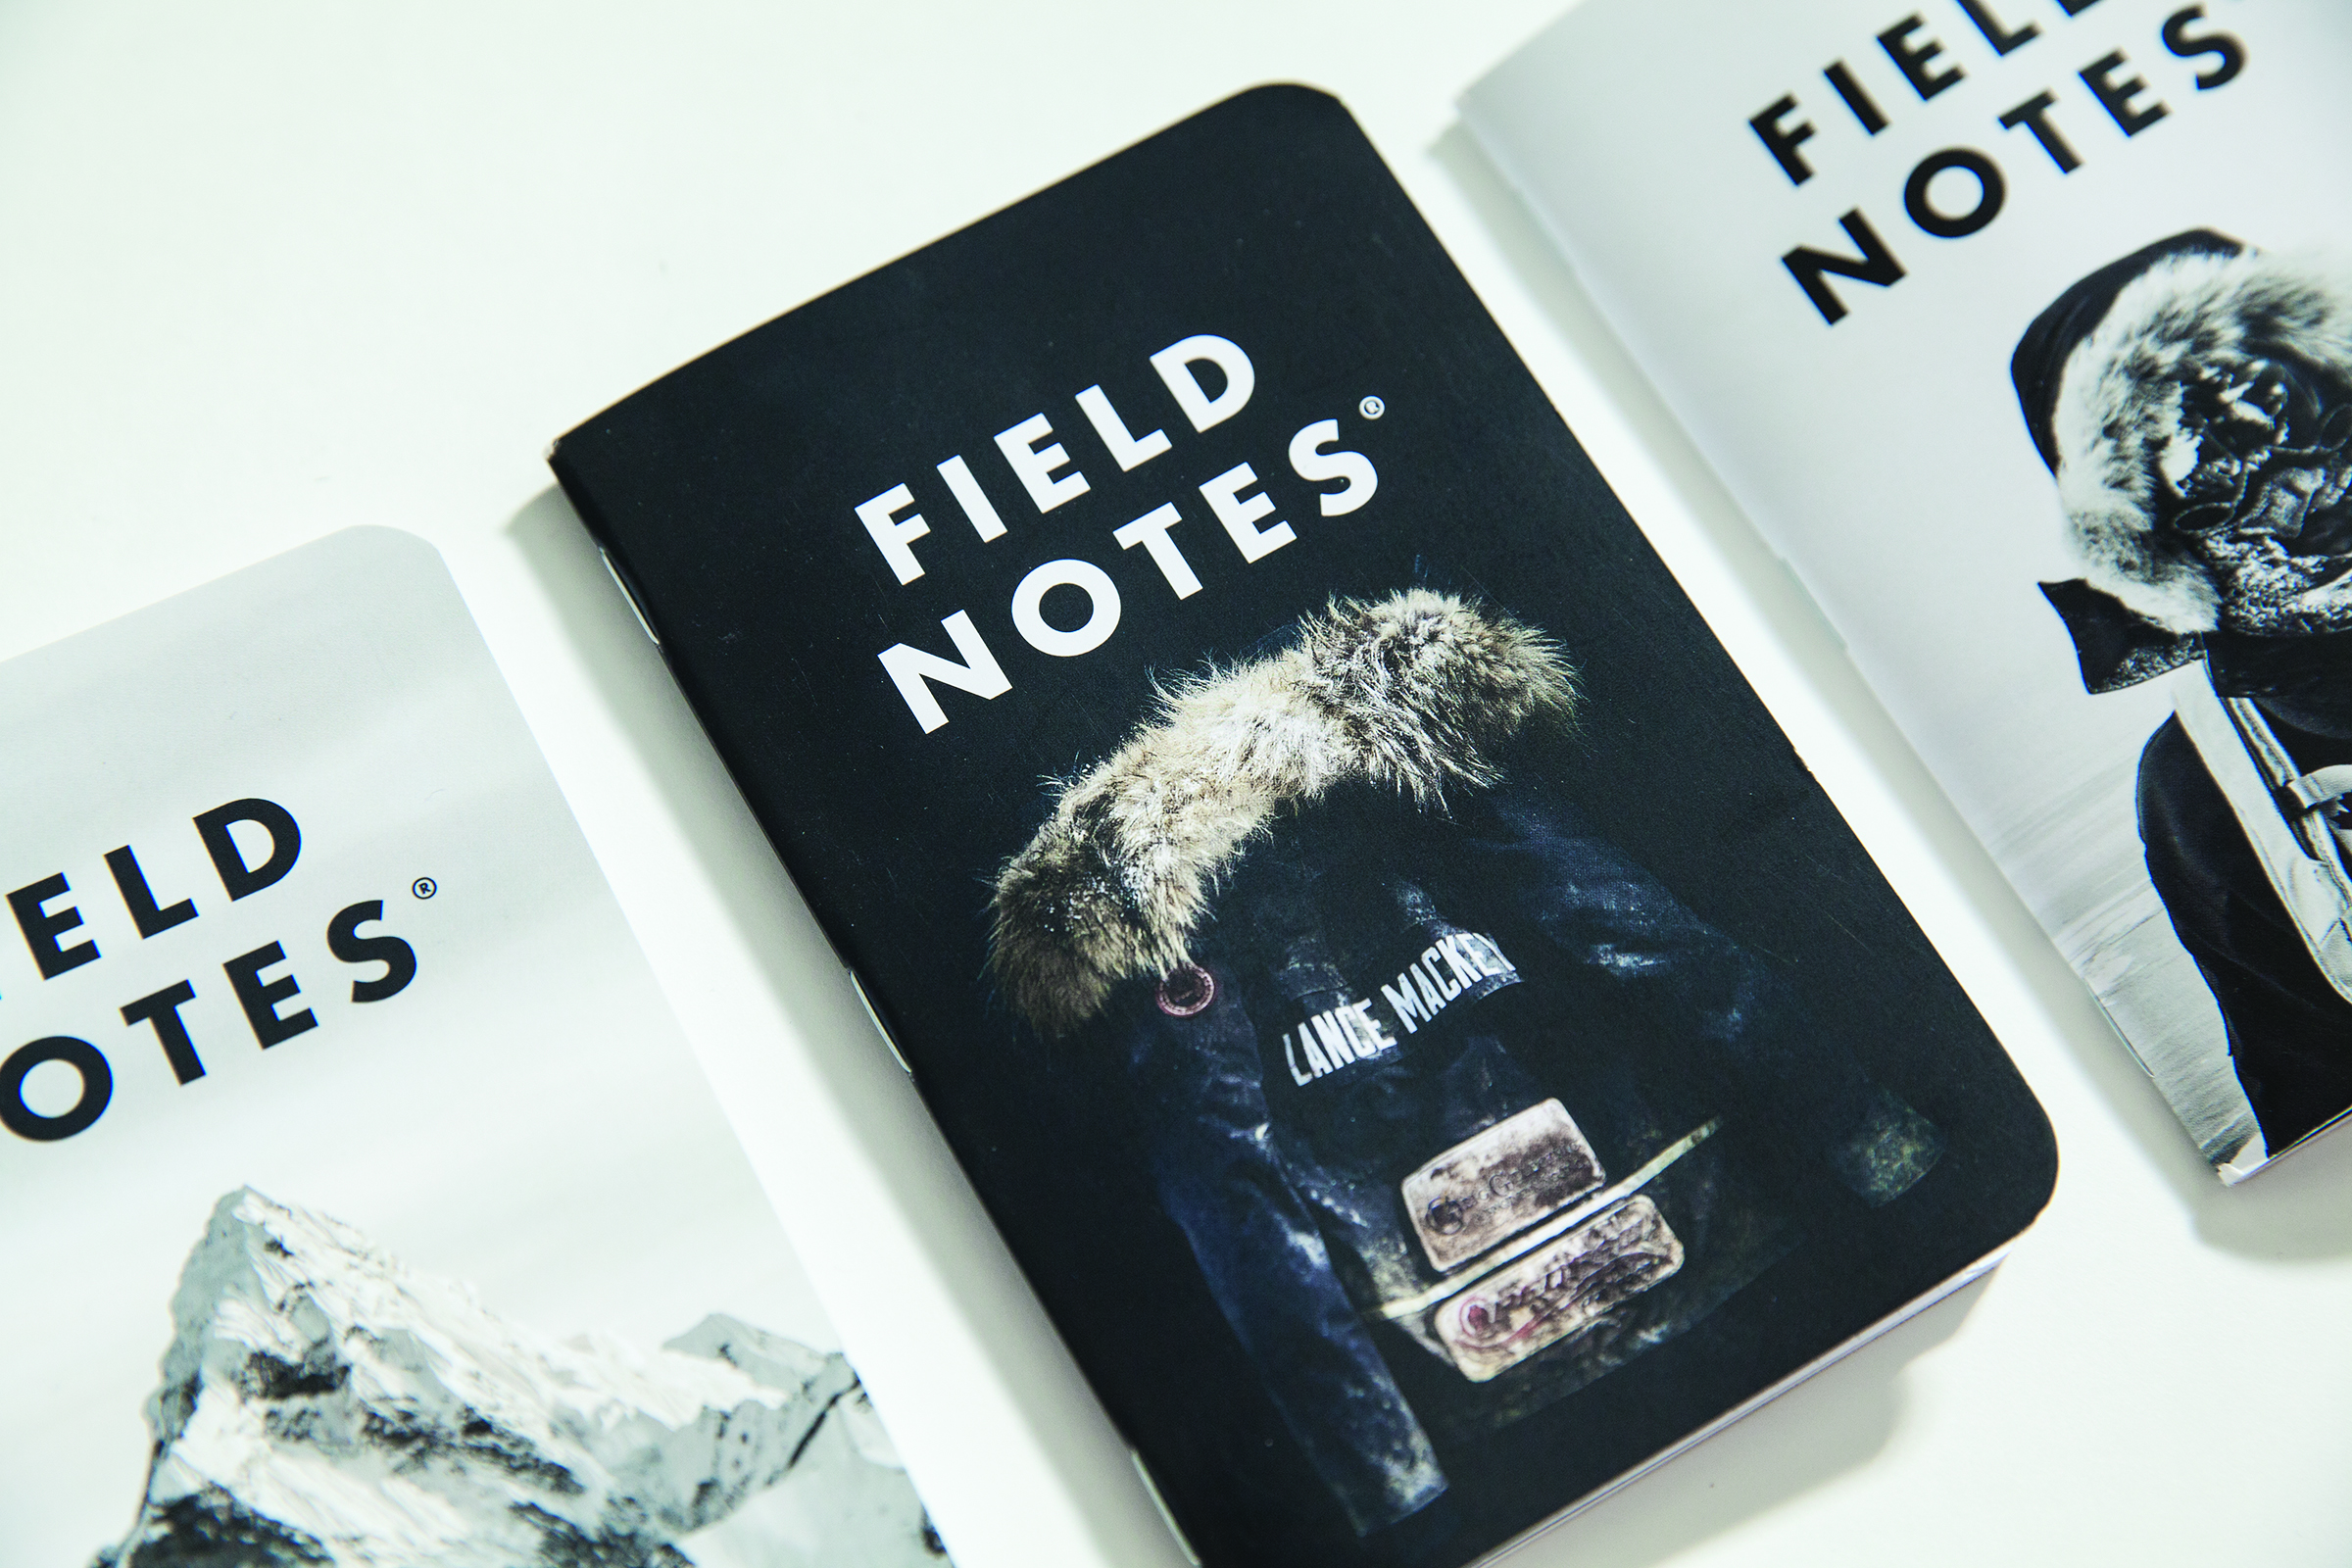 Field Notes X Canada Goose